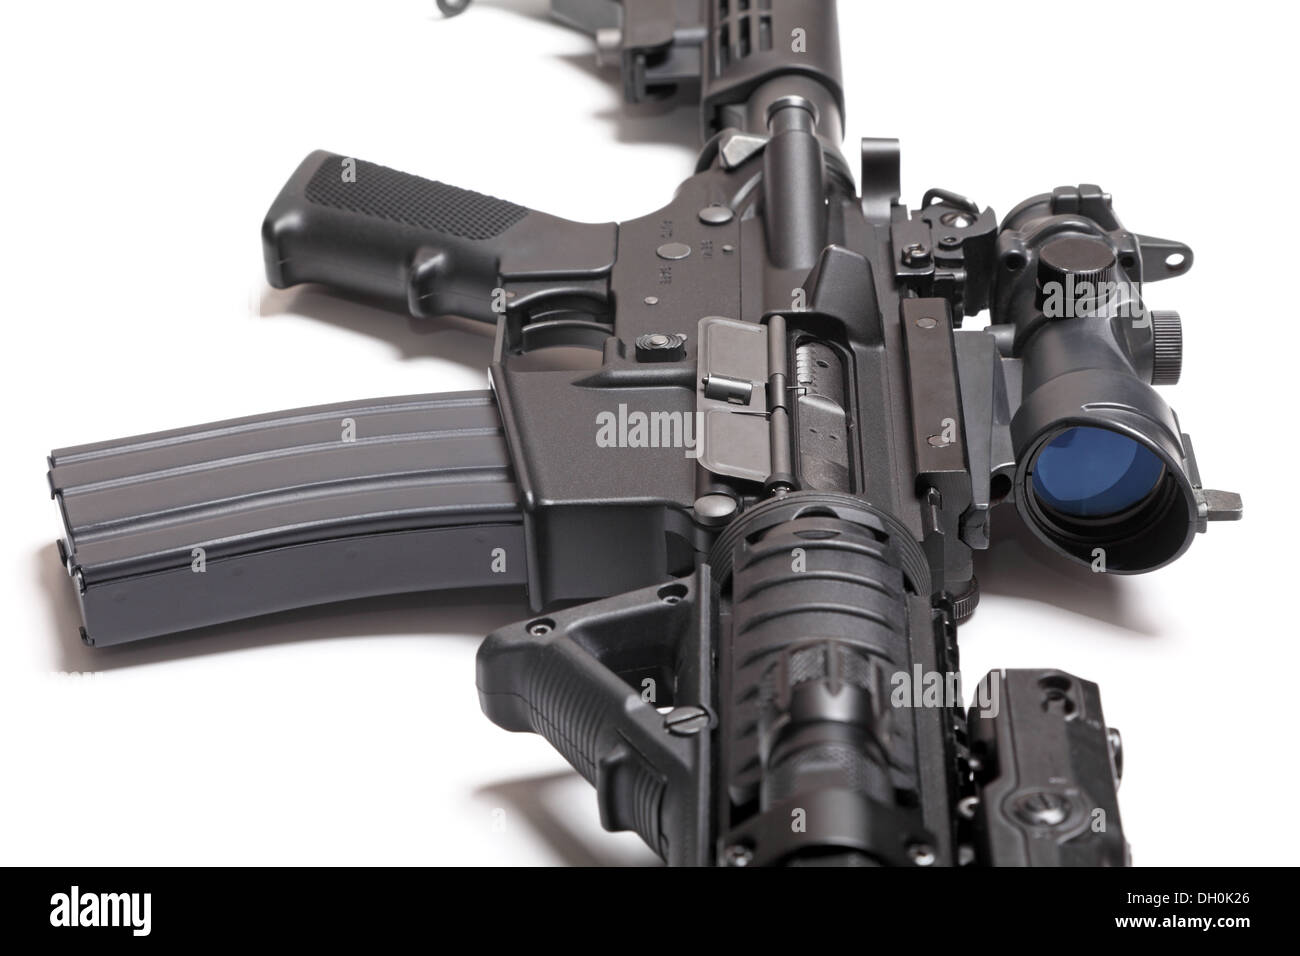 M4A1 (AR-15) carbine with optical sight close-up Stock Photo